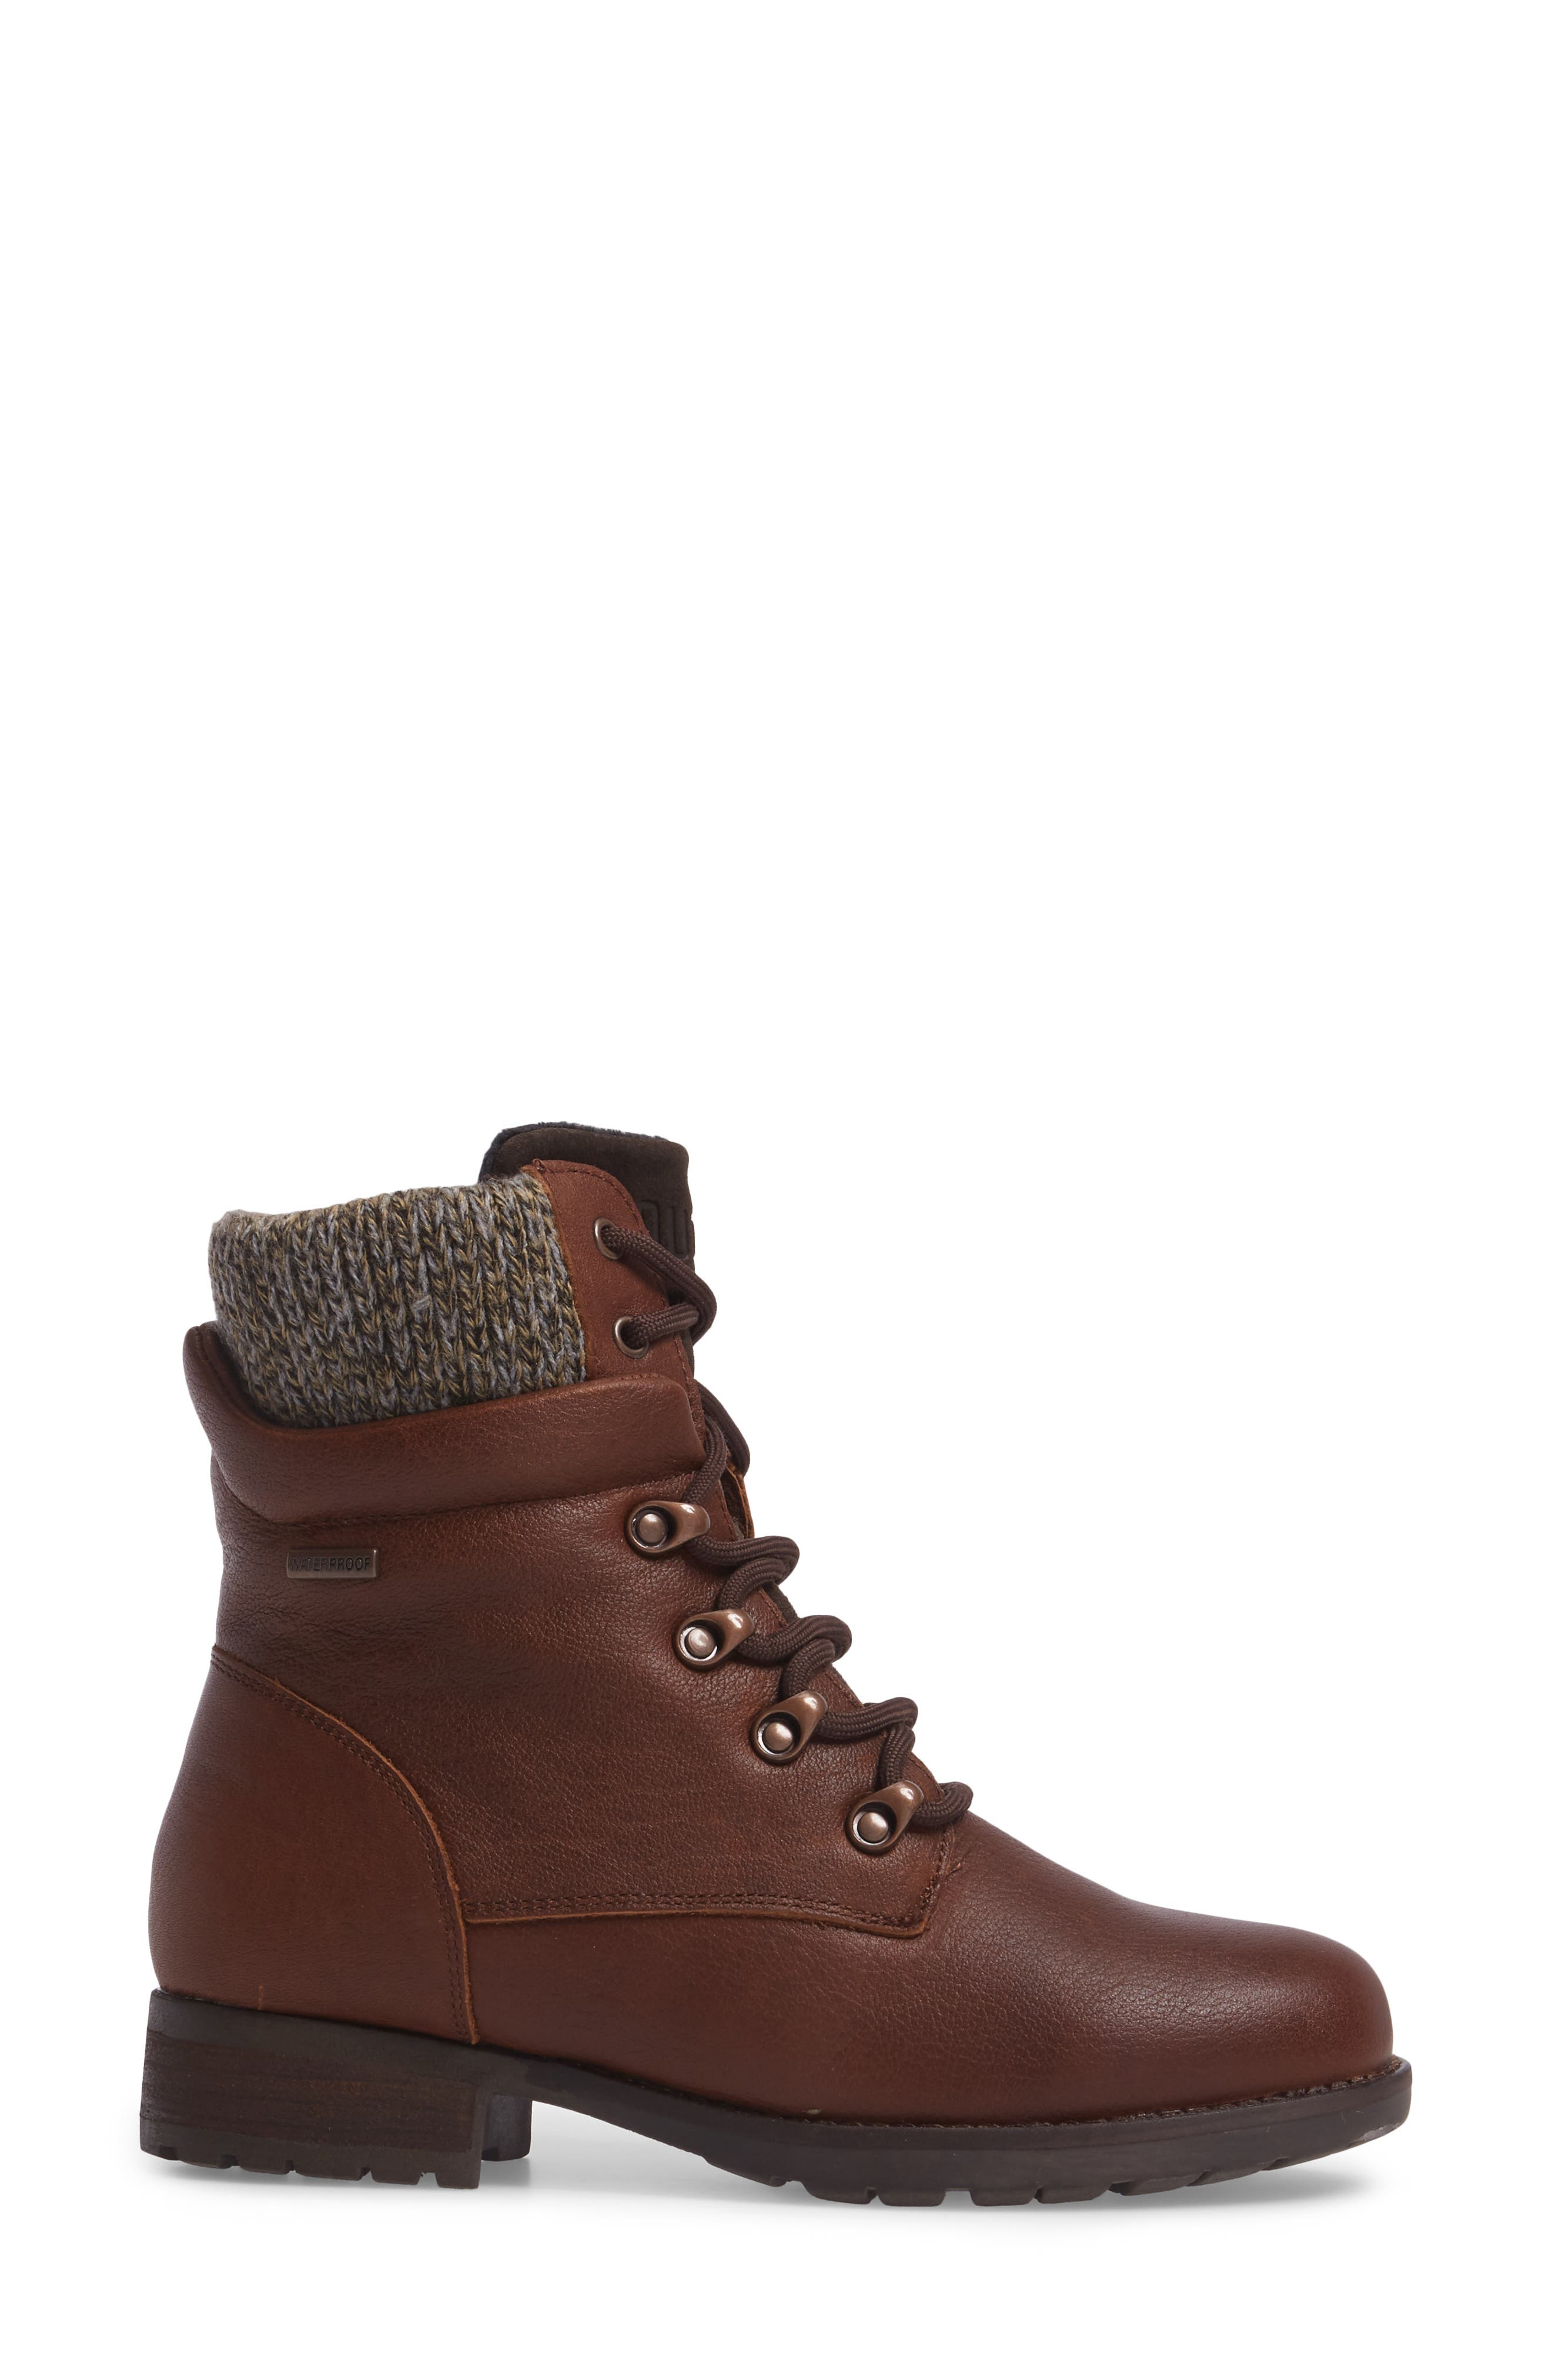 Derry Waterproof Boot,                             Alternate thumbnail 3, color,                             Dark Brown Leather